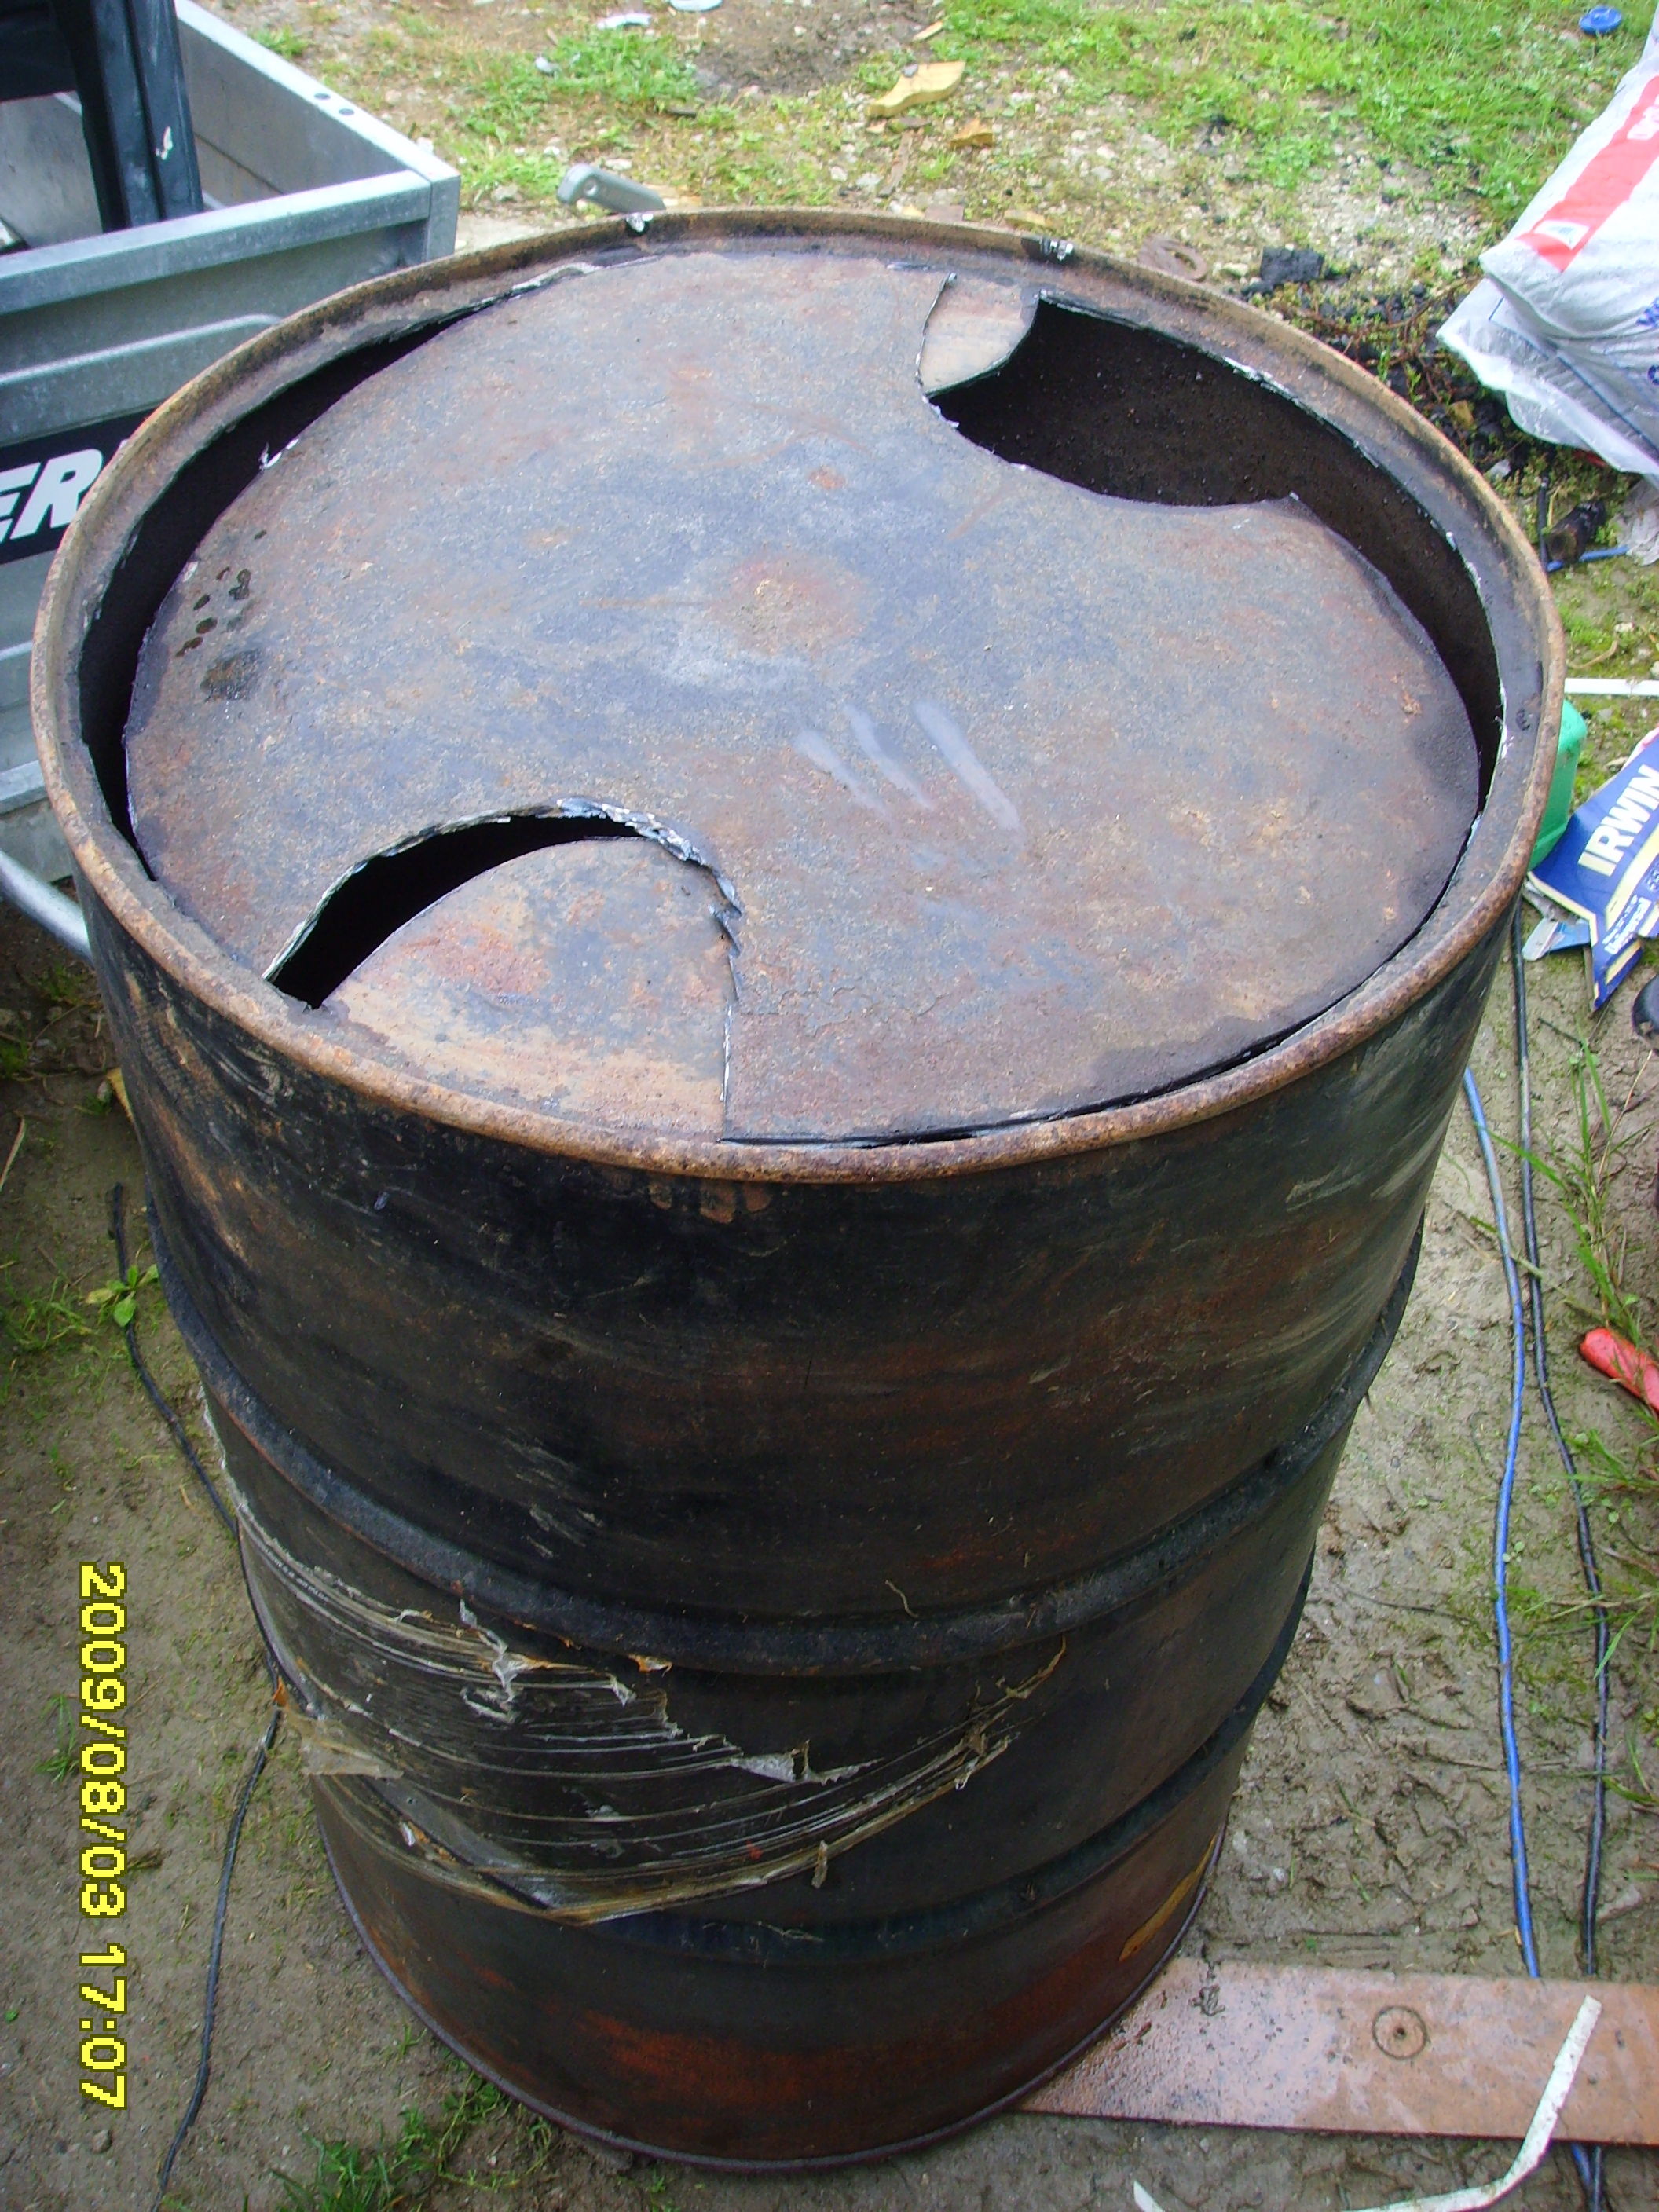 Bottom of drum - Top of Charcoal Burner